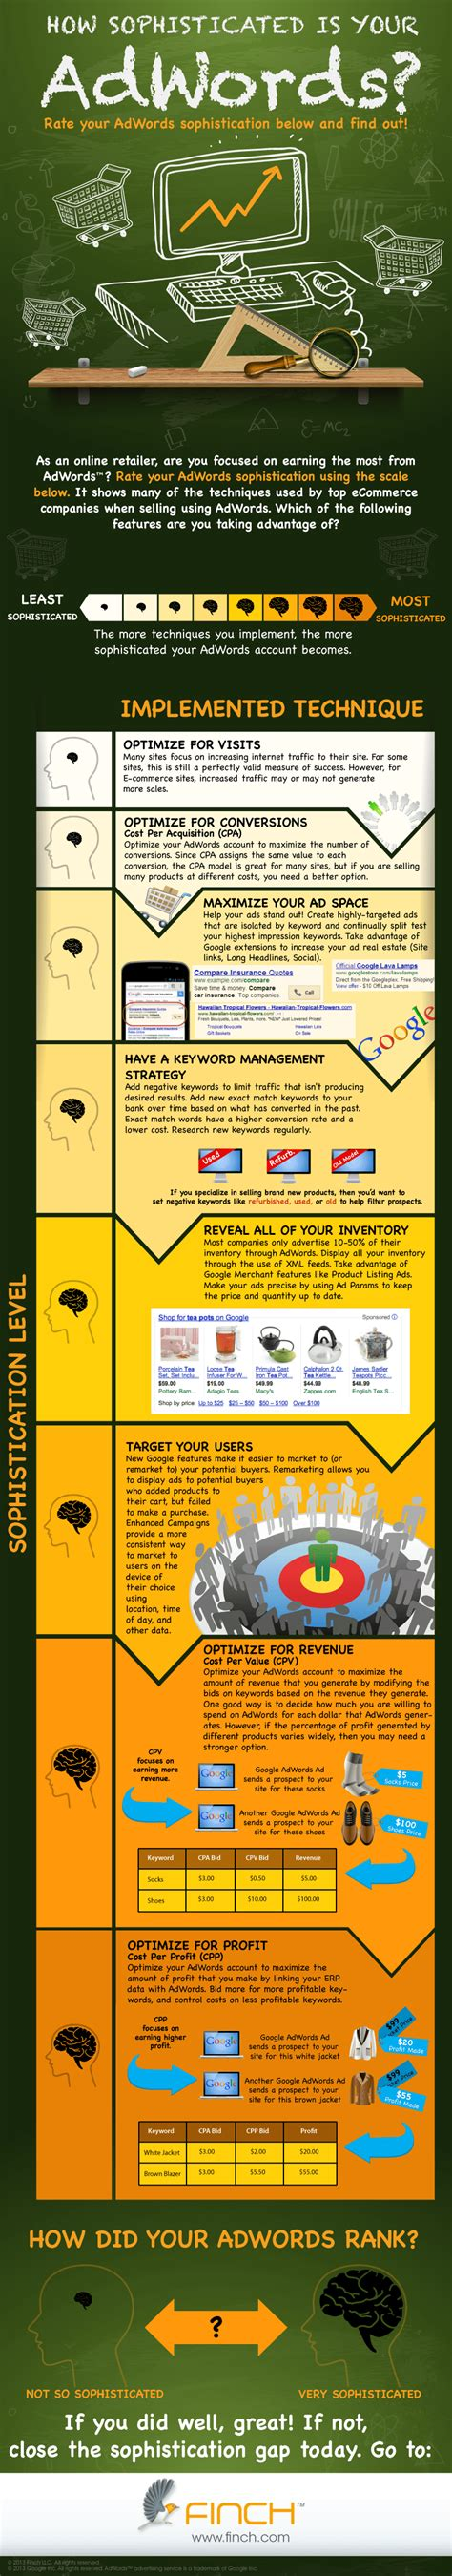 How Sophisticated Are Your Adwords Caigns Infographic Smart Insights Adwords Strategy Template